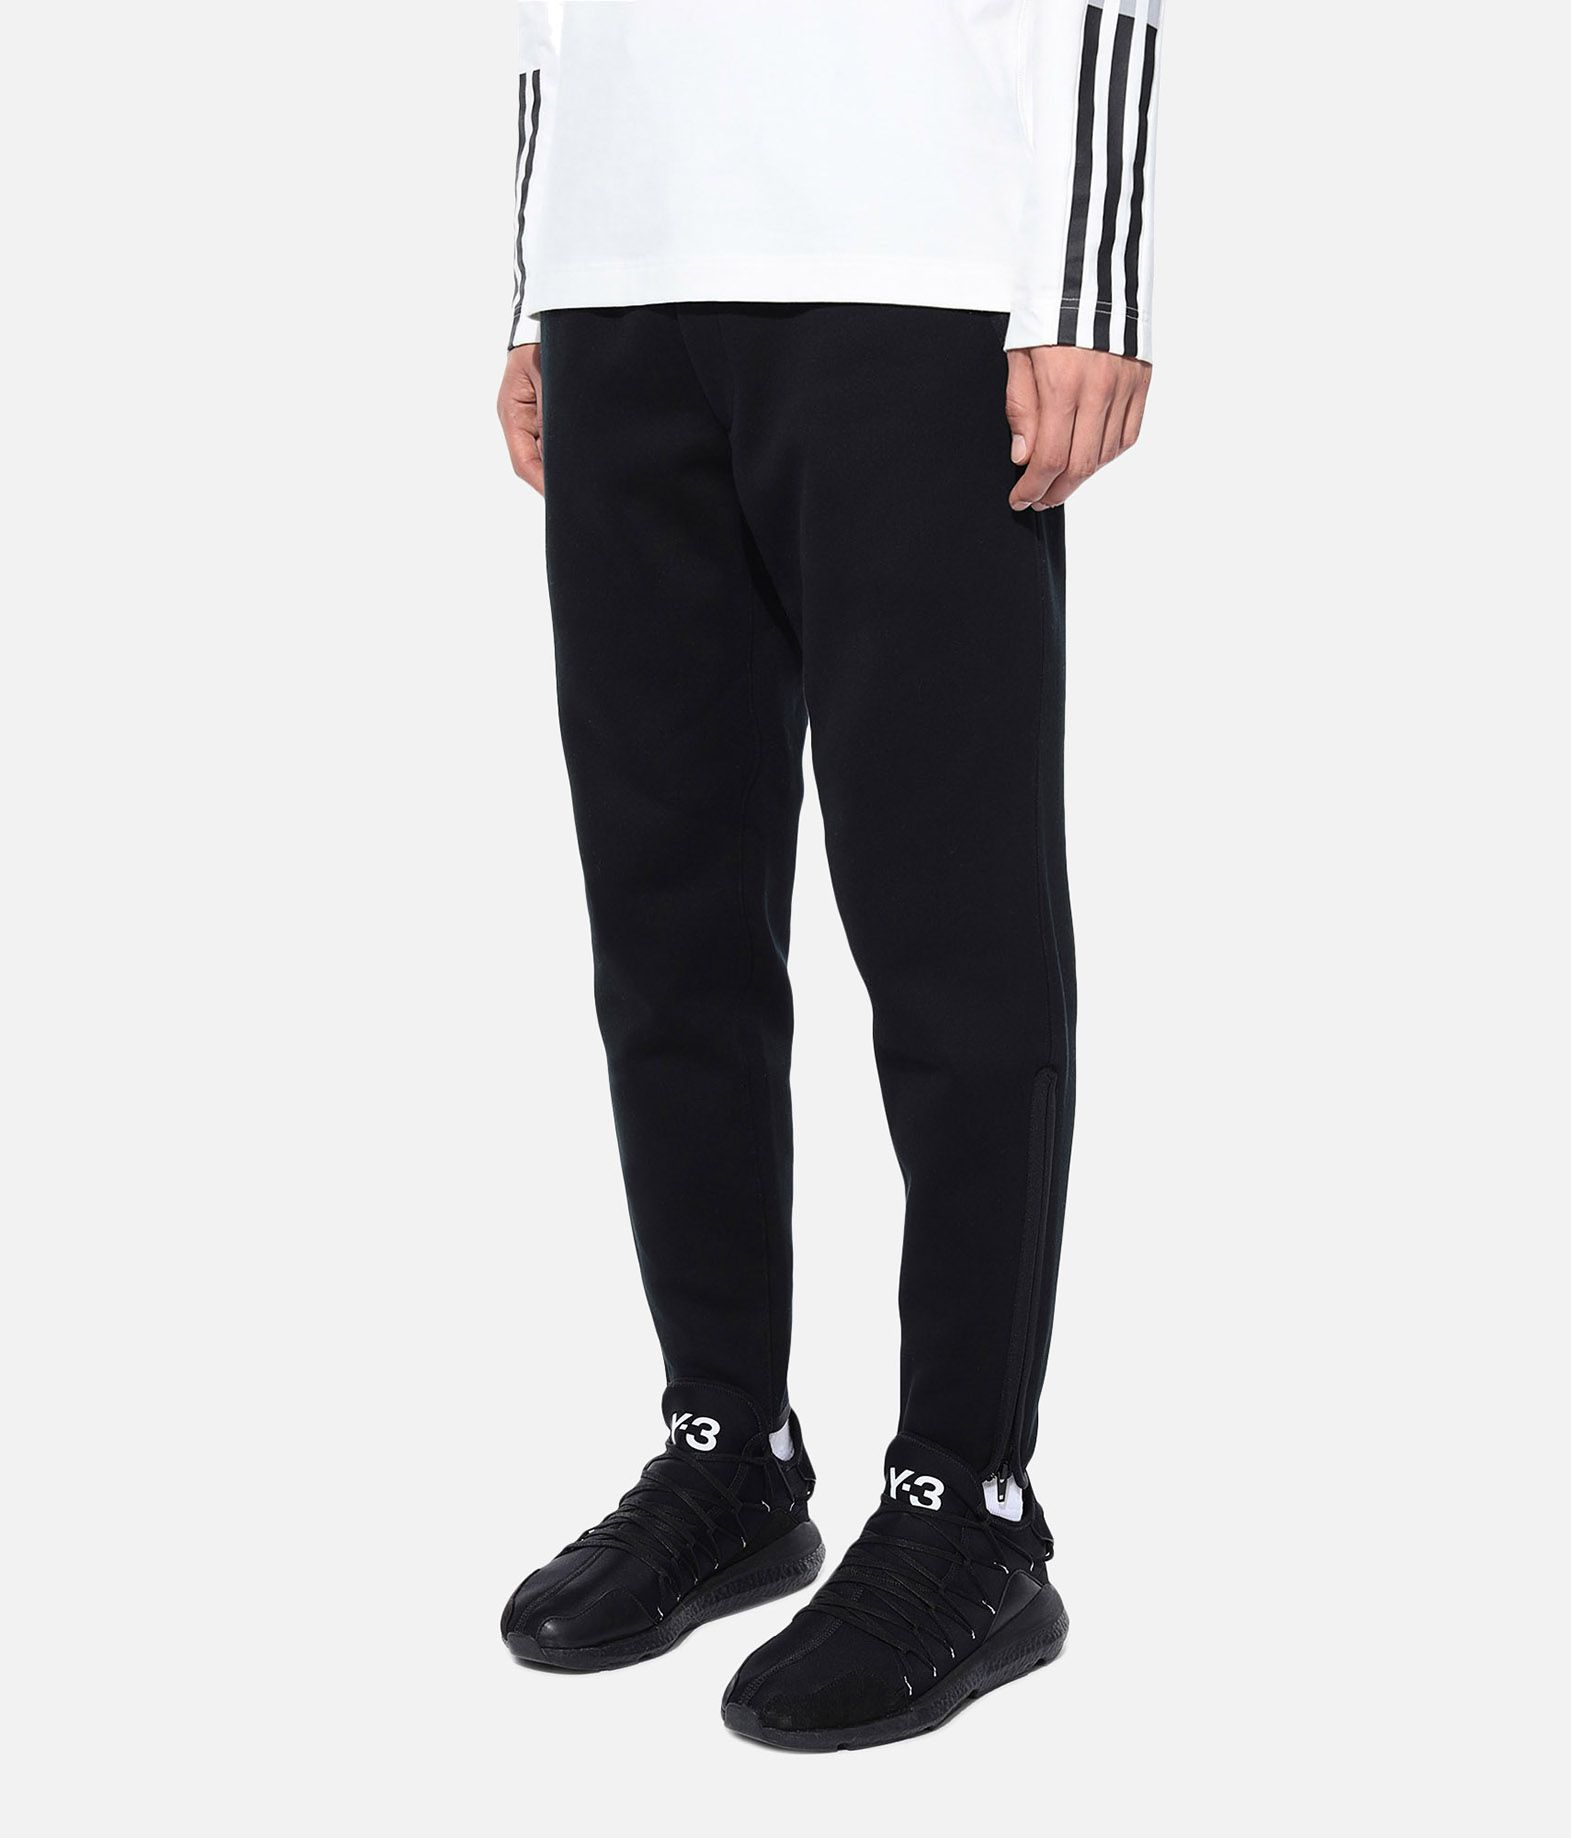 Y-3 Y-3 Binding Track Pants Track pant Man e